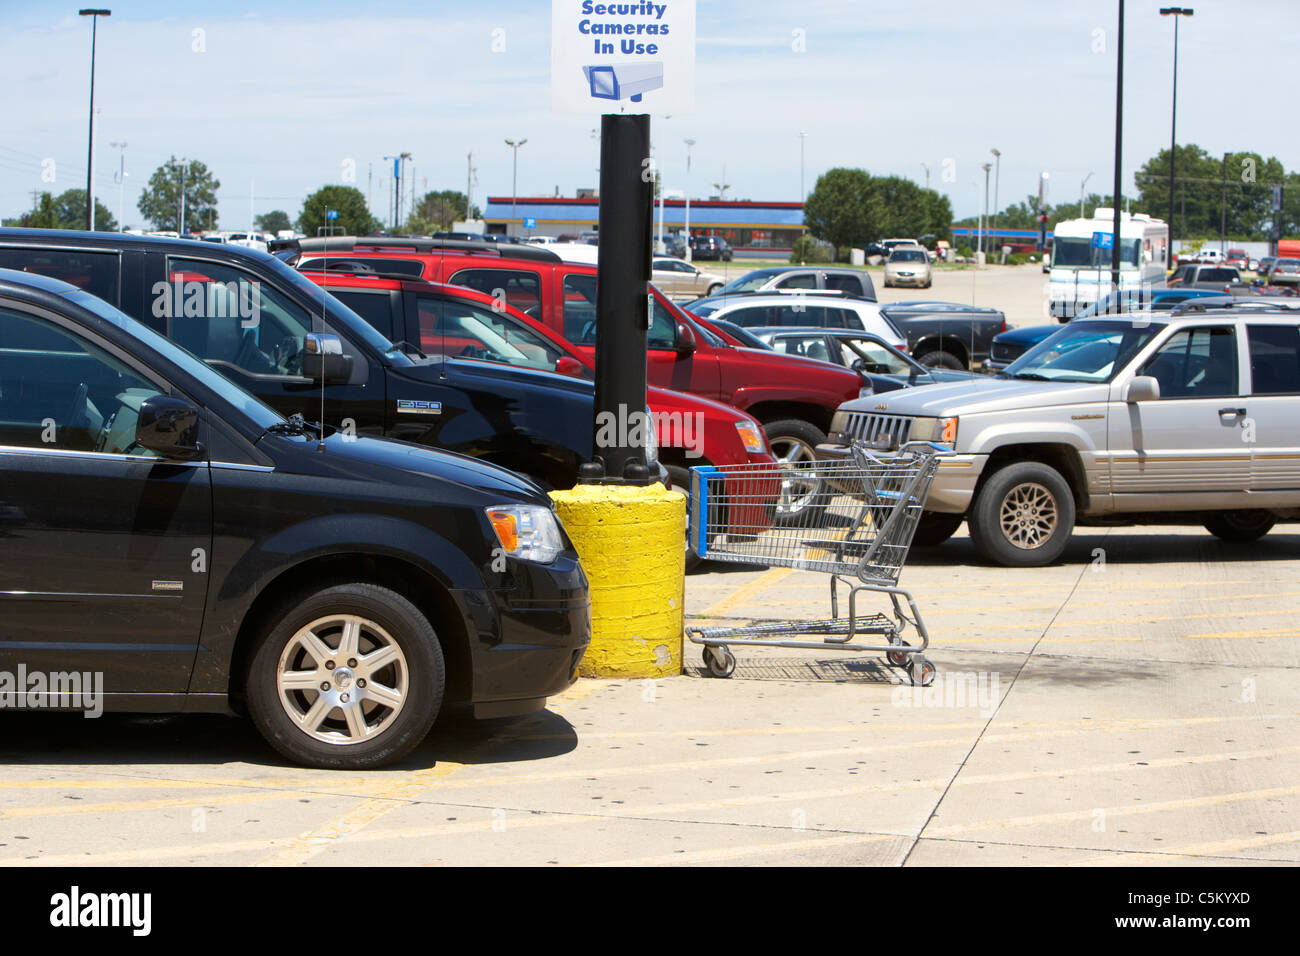 cars trucks suvs parked in car parking lot of supermarket in the usa - Stock Image